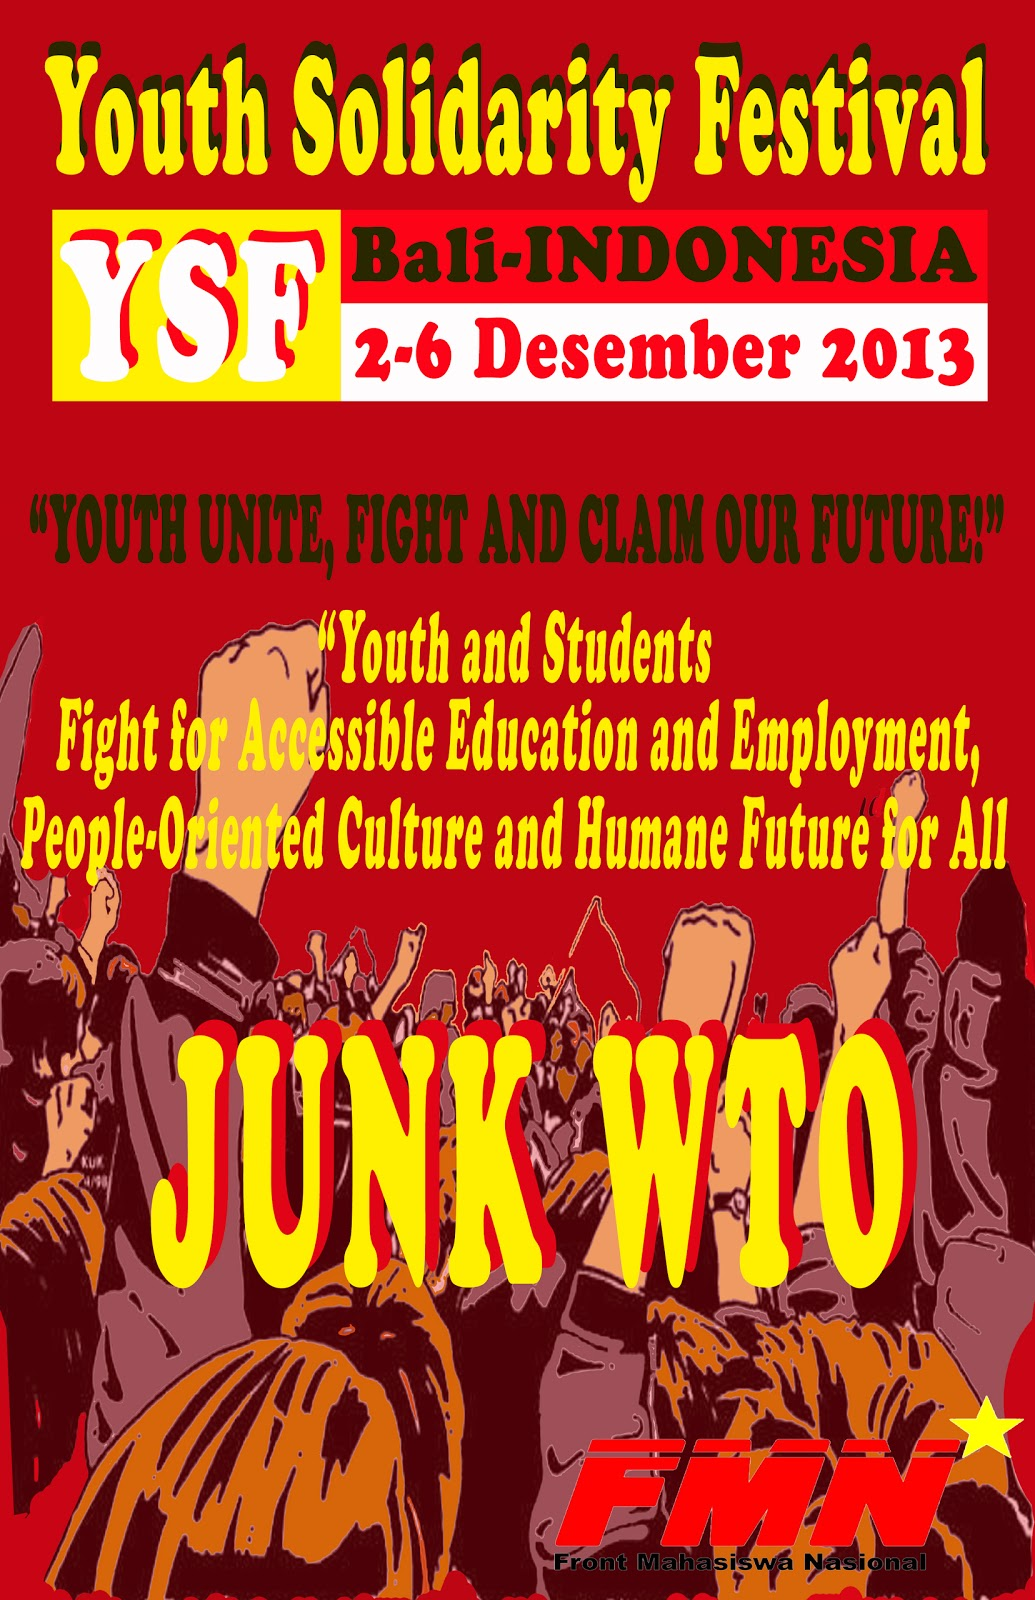 Youth Solidarity Festival, Bali, 2-6 December 2013